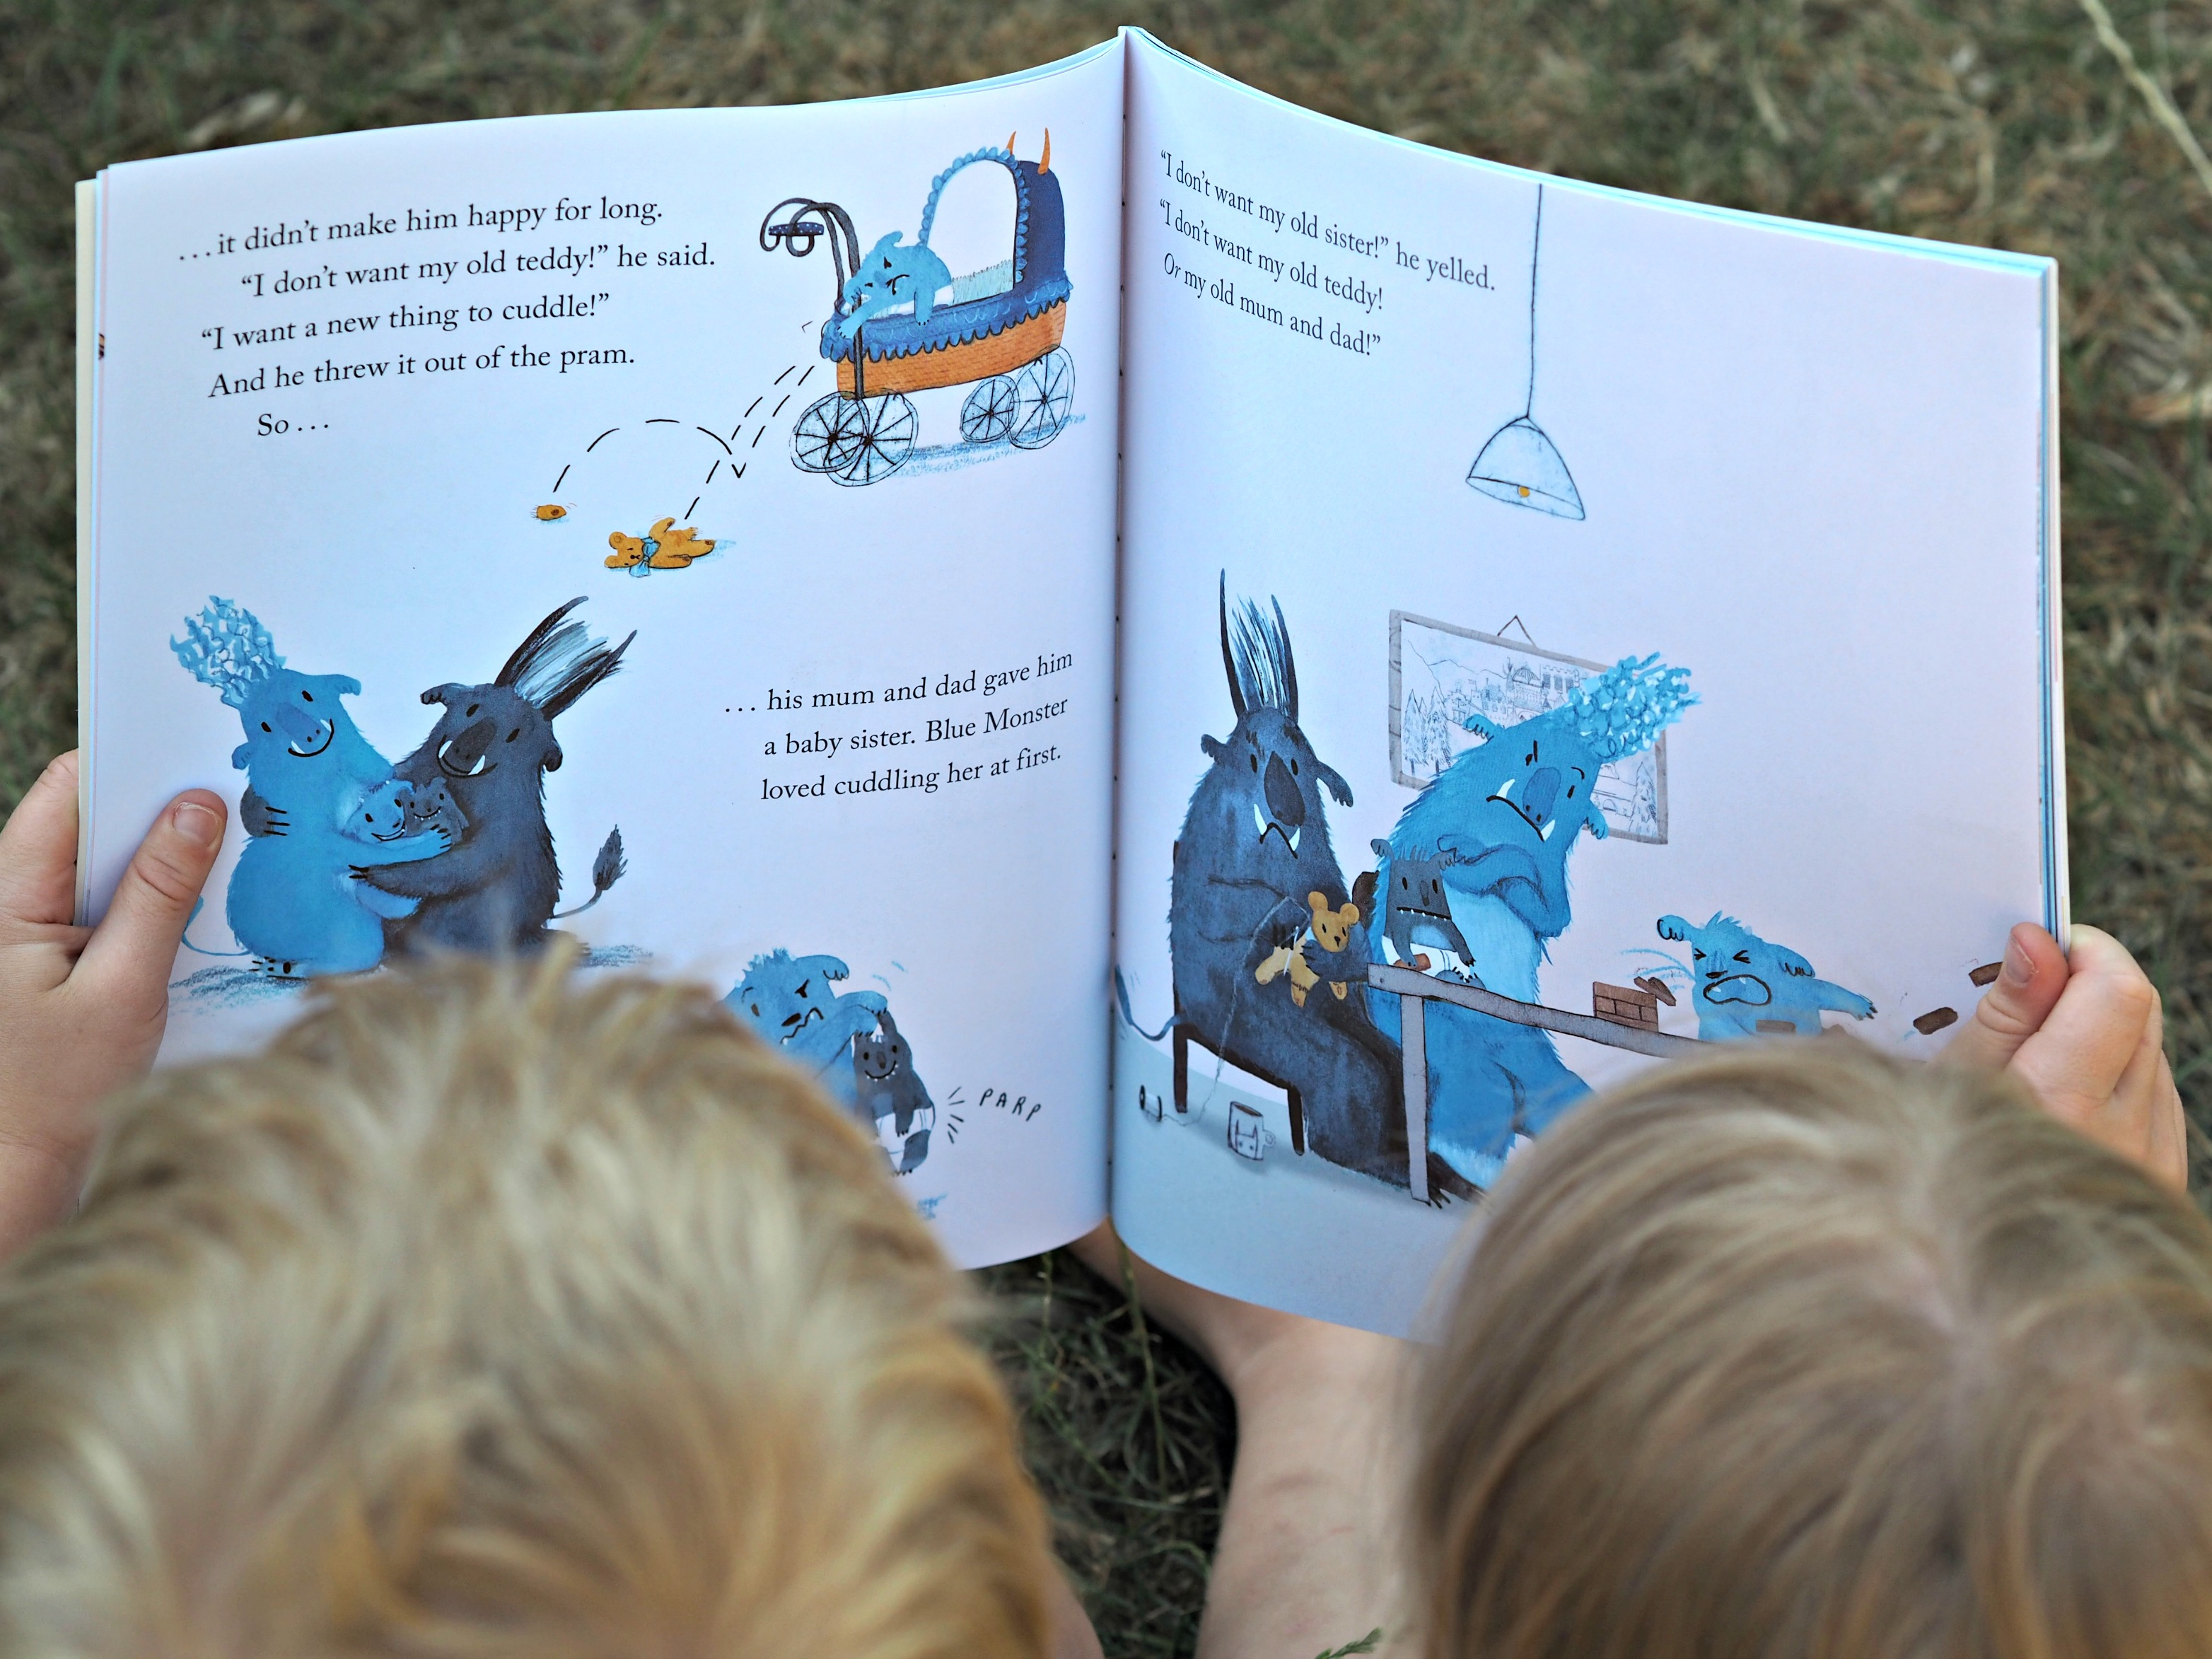 CHILDREN'S BOOK REVIEW Blue Monster Wants It All - inside the book